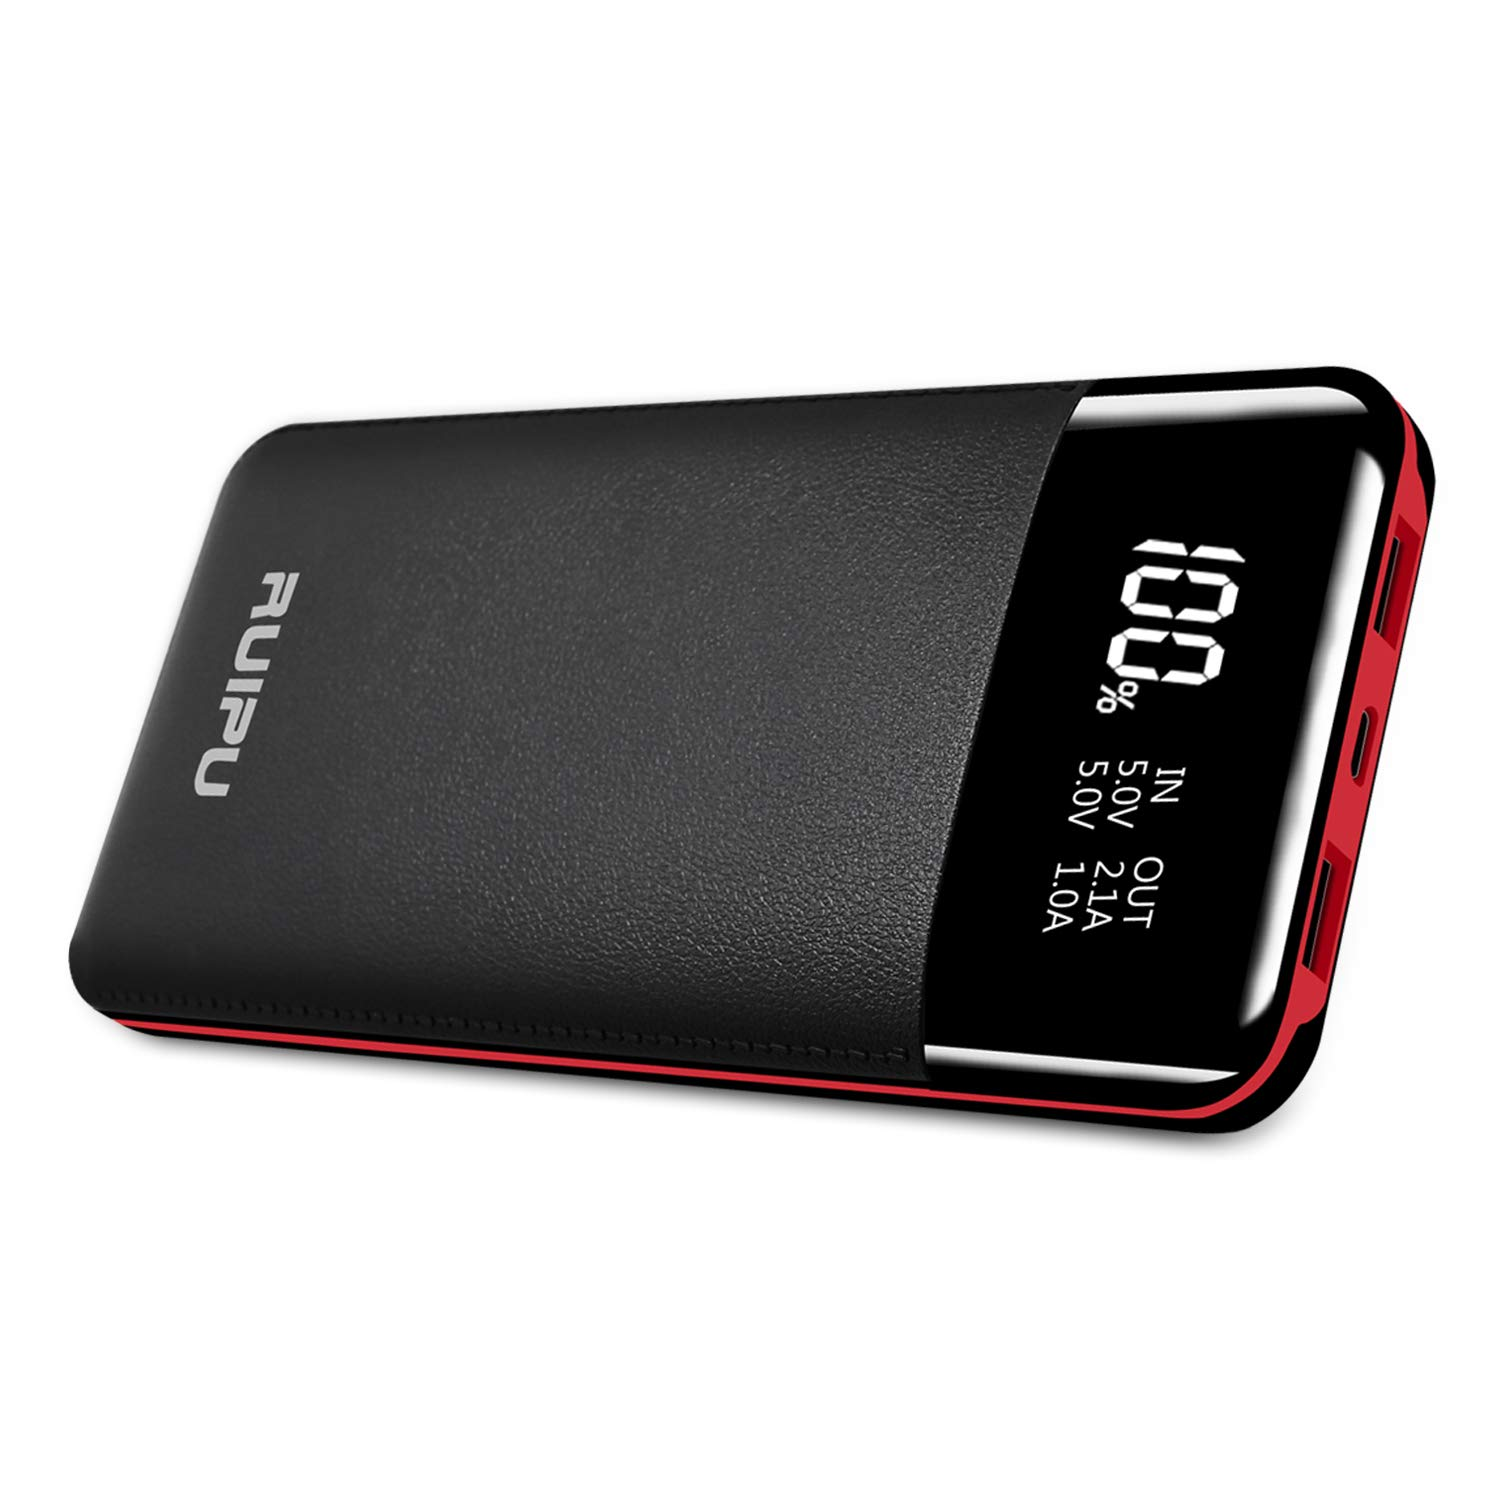 Portable Charger Power Bank 24000mAh High Capacity Backup Battery 2 USB Output Battery Pack Phone Charger with LCD Digital Display Compatible Android Phones,Tablets and Other USB-Power Devices by RUIPU